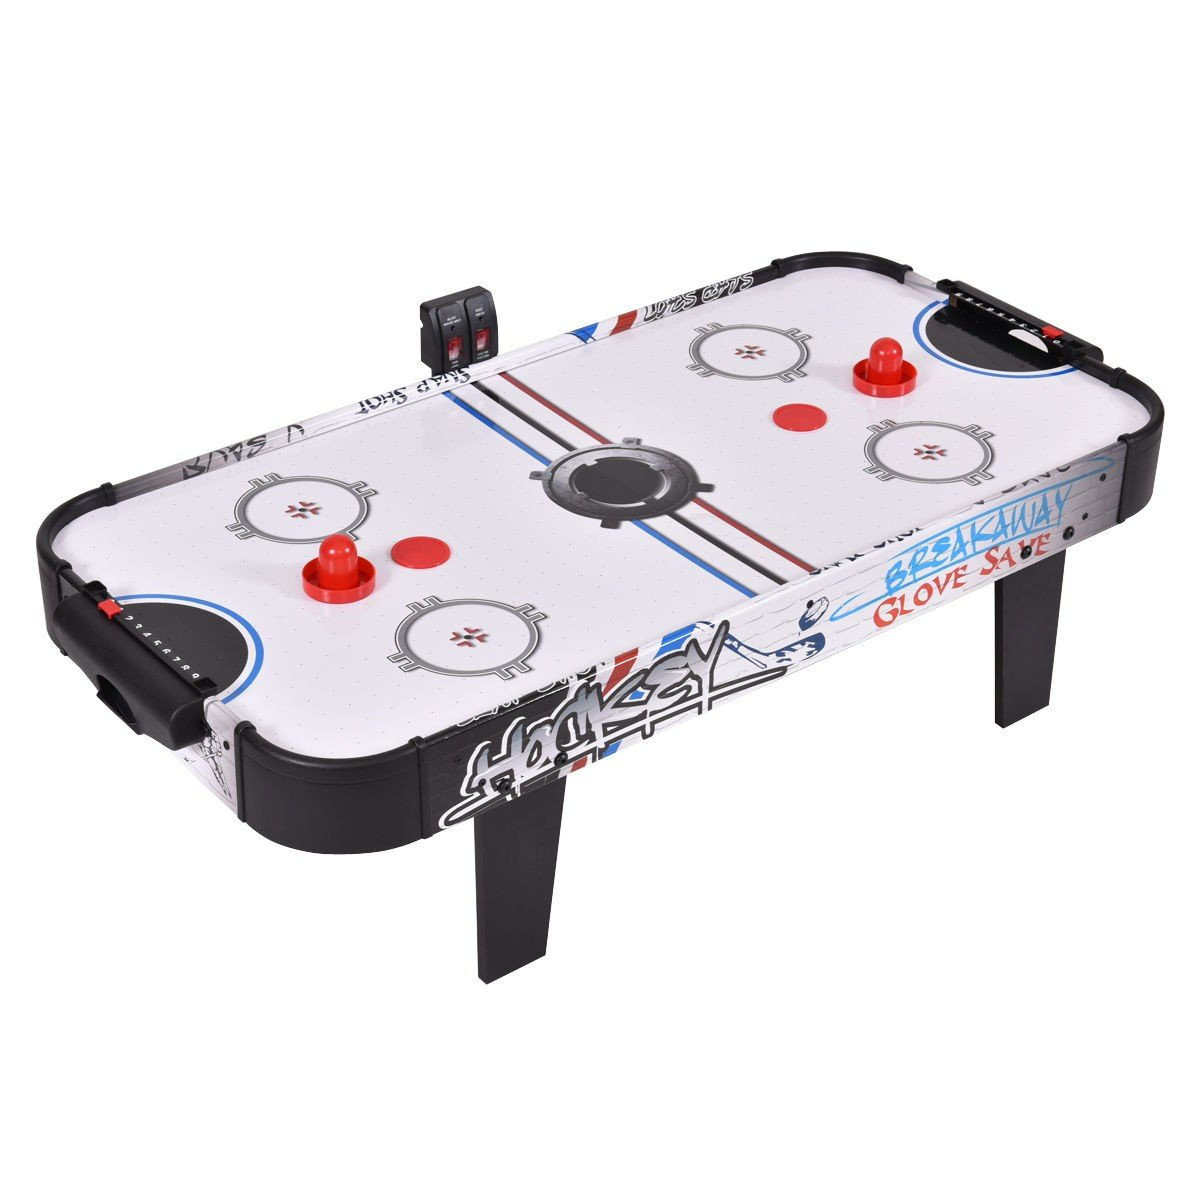 42'' Air Powered Hockey Table Top Scoring 2 Pushers by Abbeydh